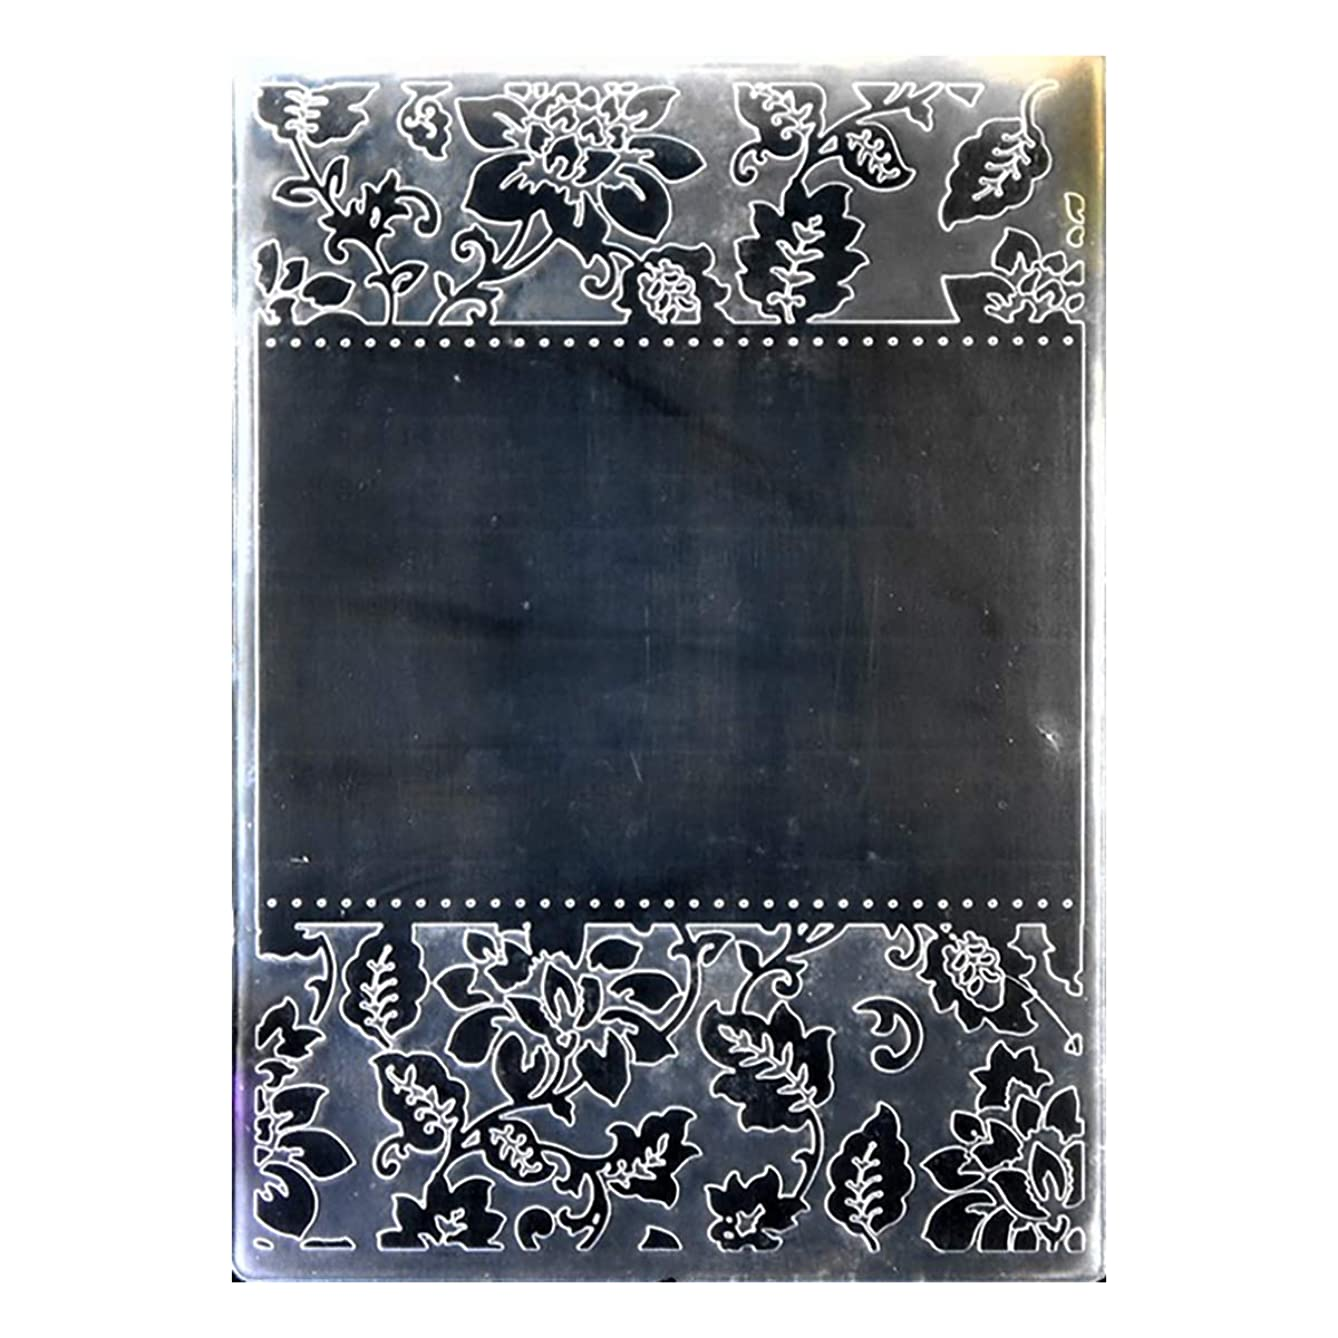 Kwan Crafts Flowers Frame Plastic Embossing Folders for Card Making Scrapbooking and Other Paper Crafts, 12.5x17.7cm